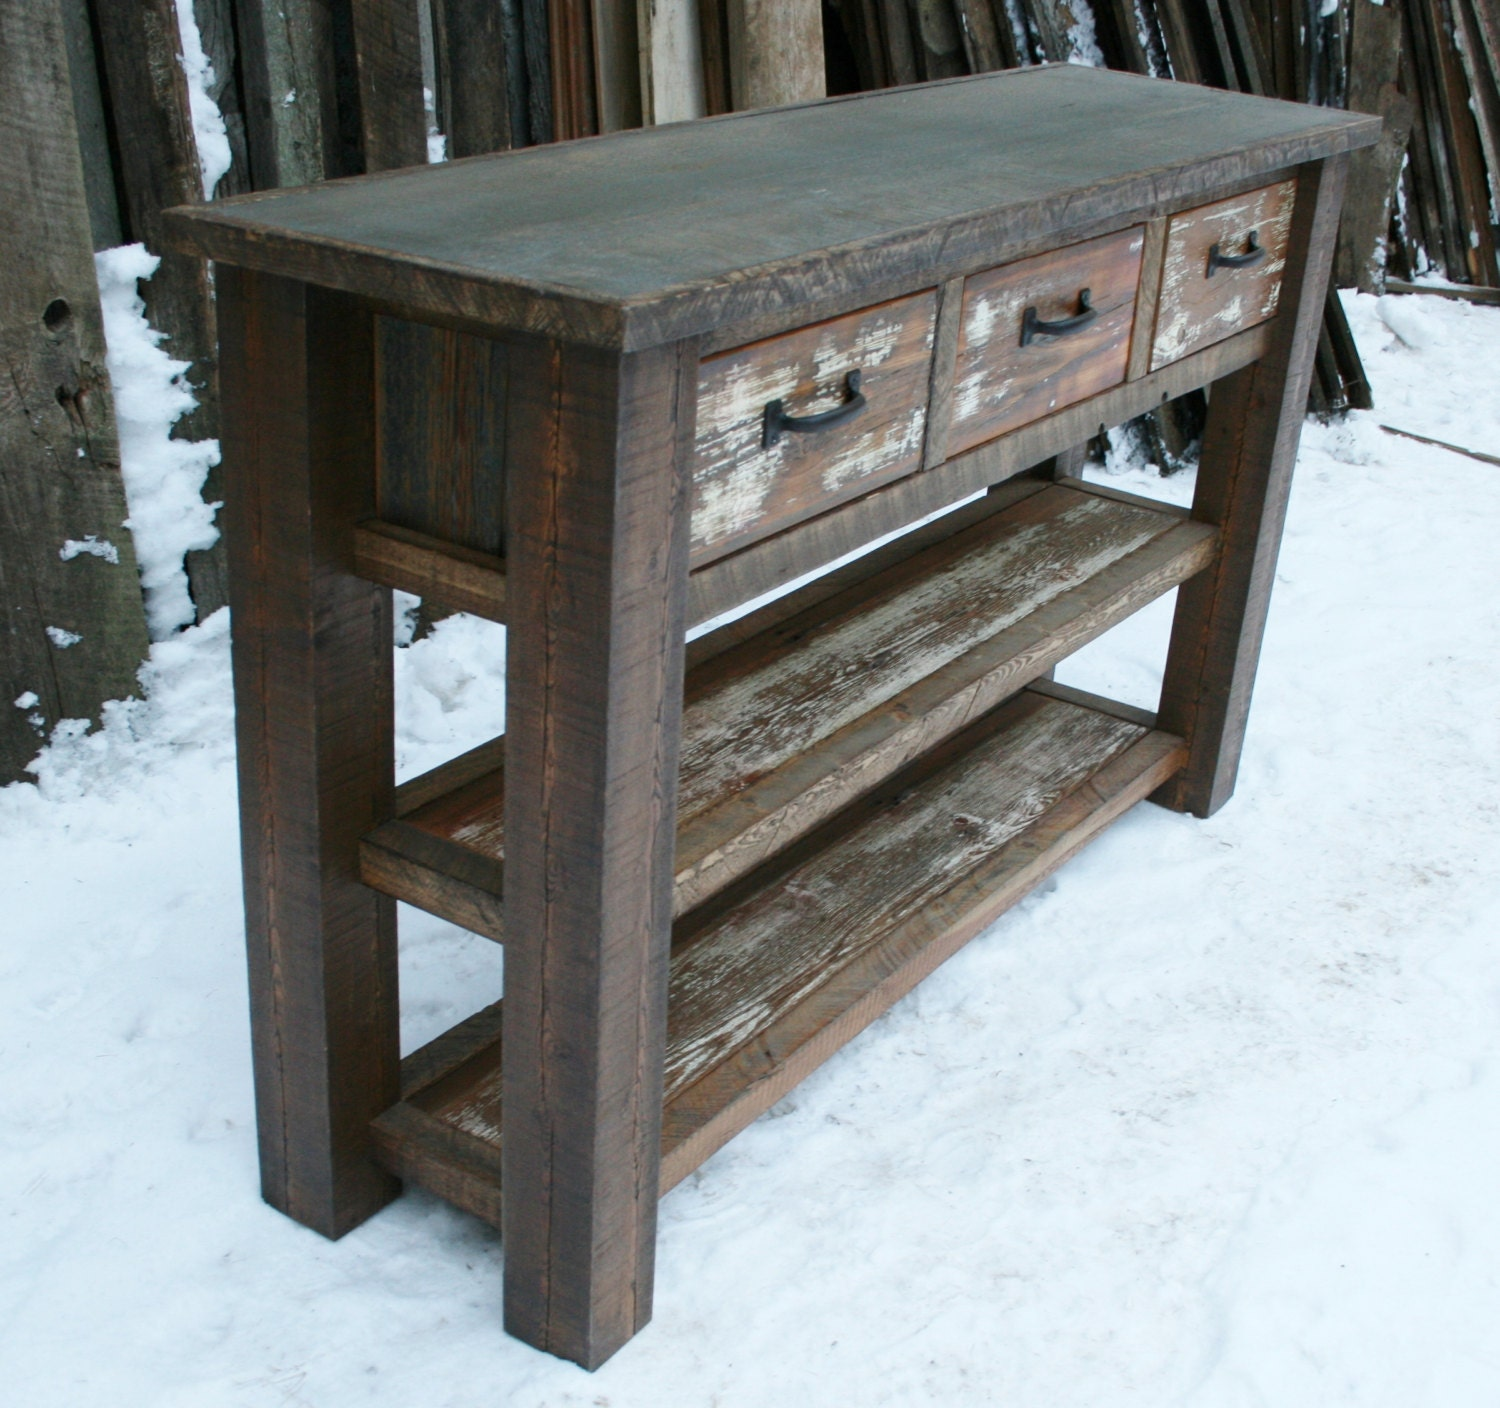 Reclaimed Rustic Console Entry Table By Echopeakdesign On Etsy